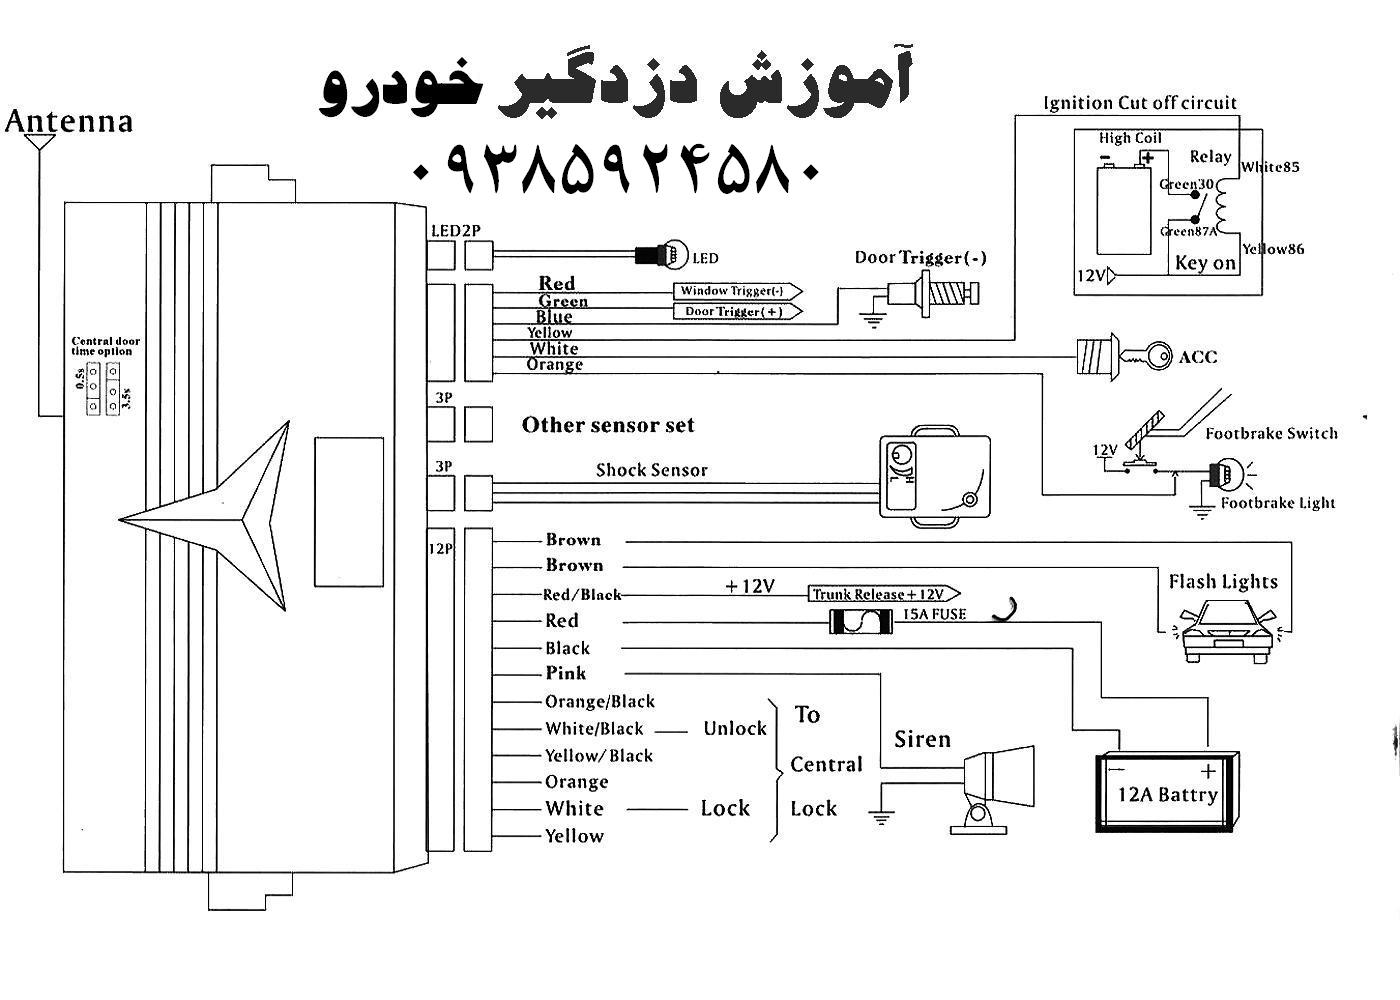 car alarm map (10) wiring diagram for viper car alarm efcaviation com viper car alarm wiring diagram at mifinder.co